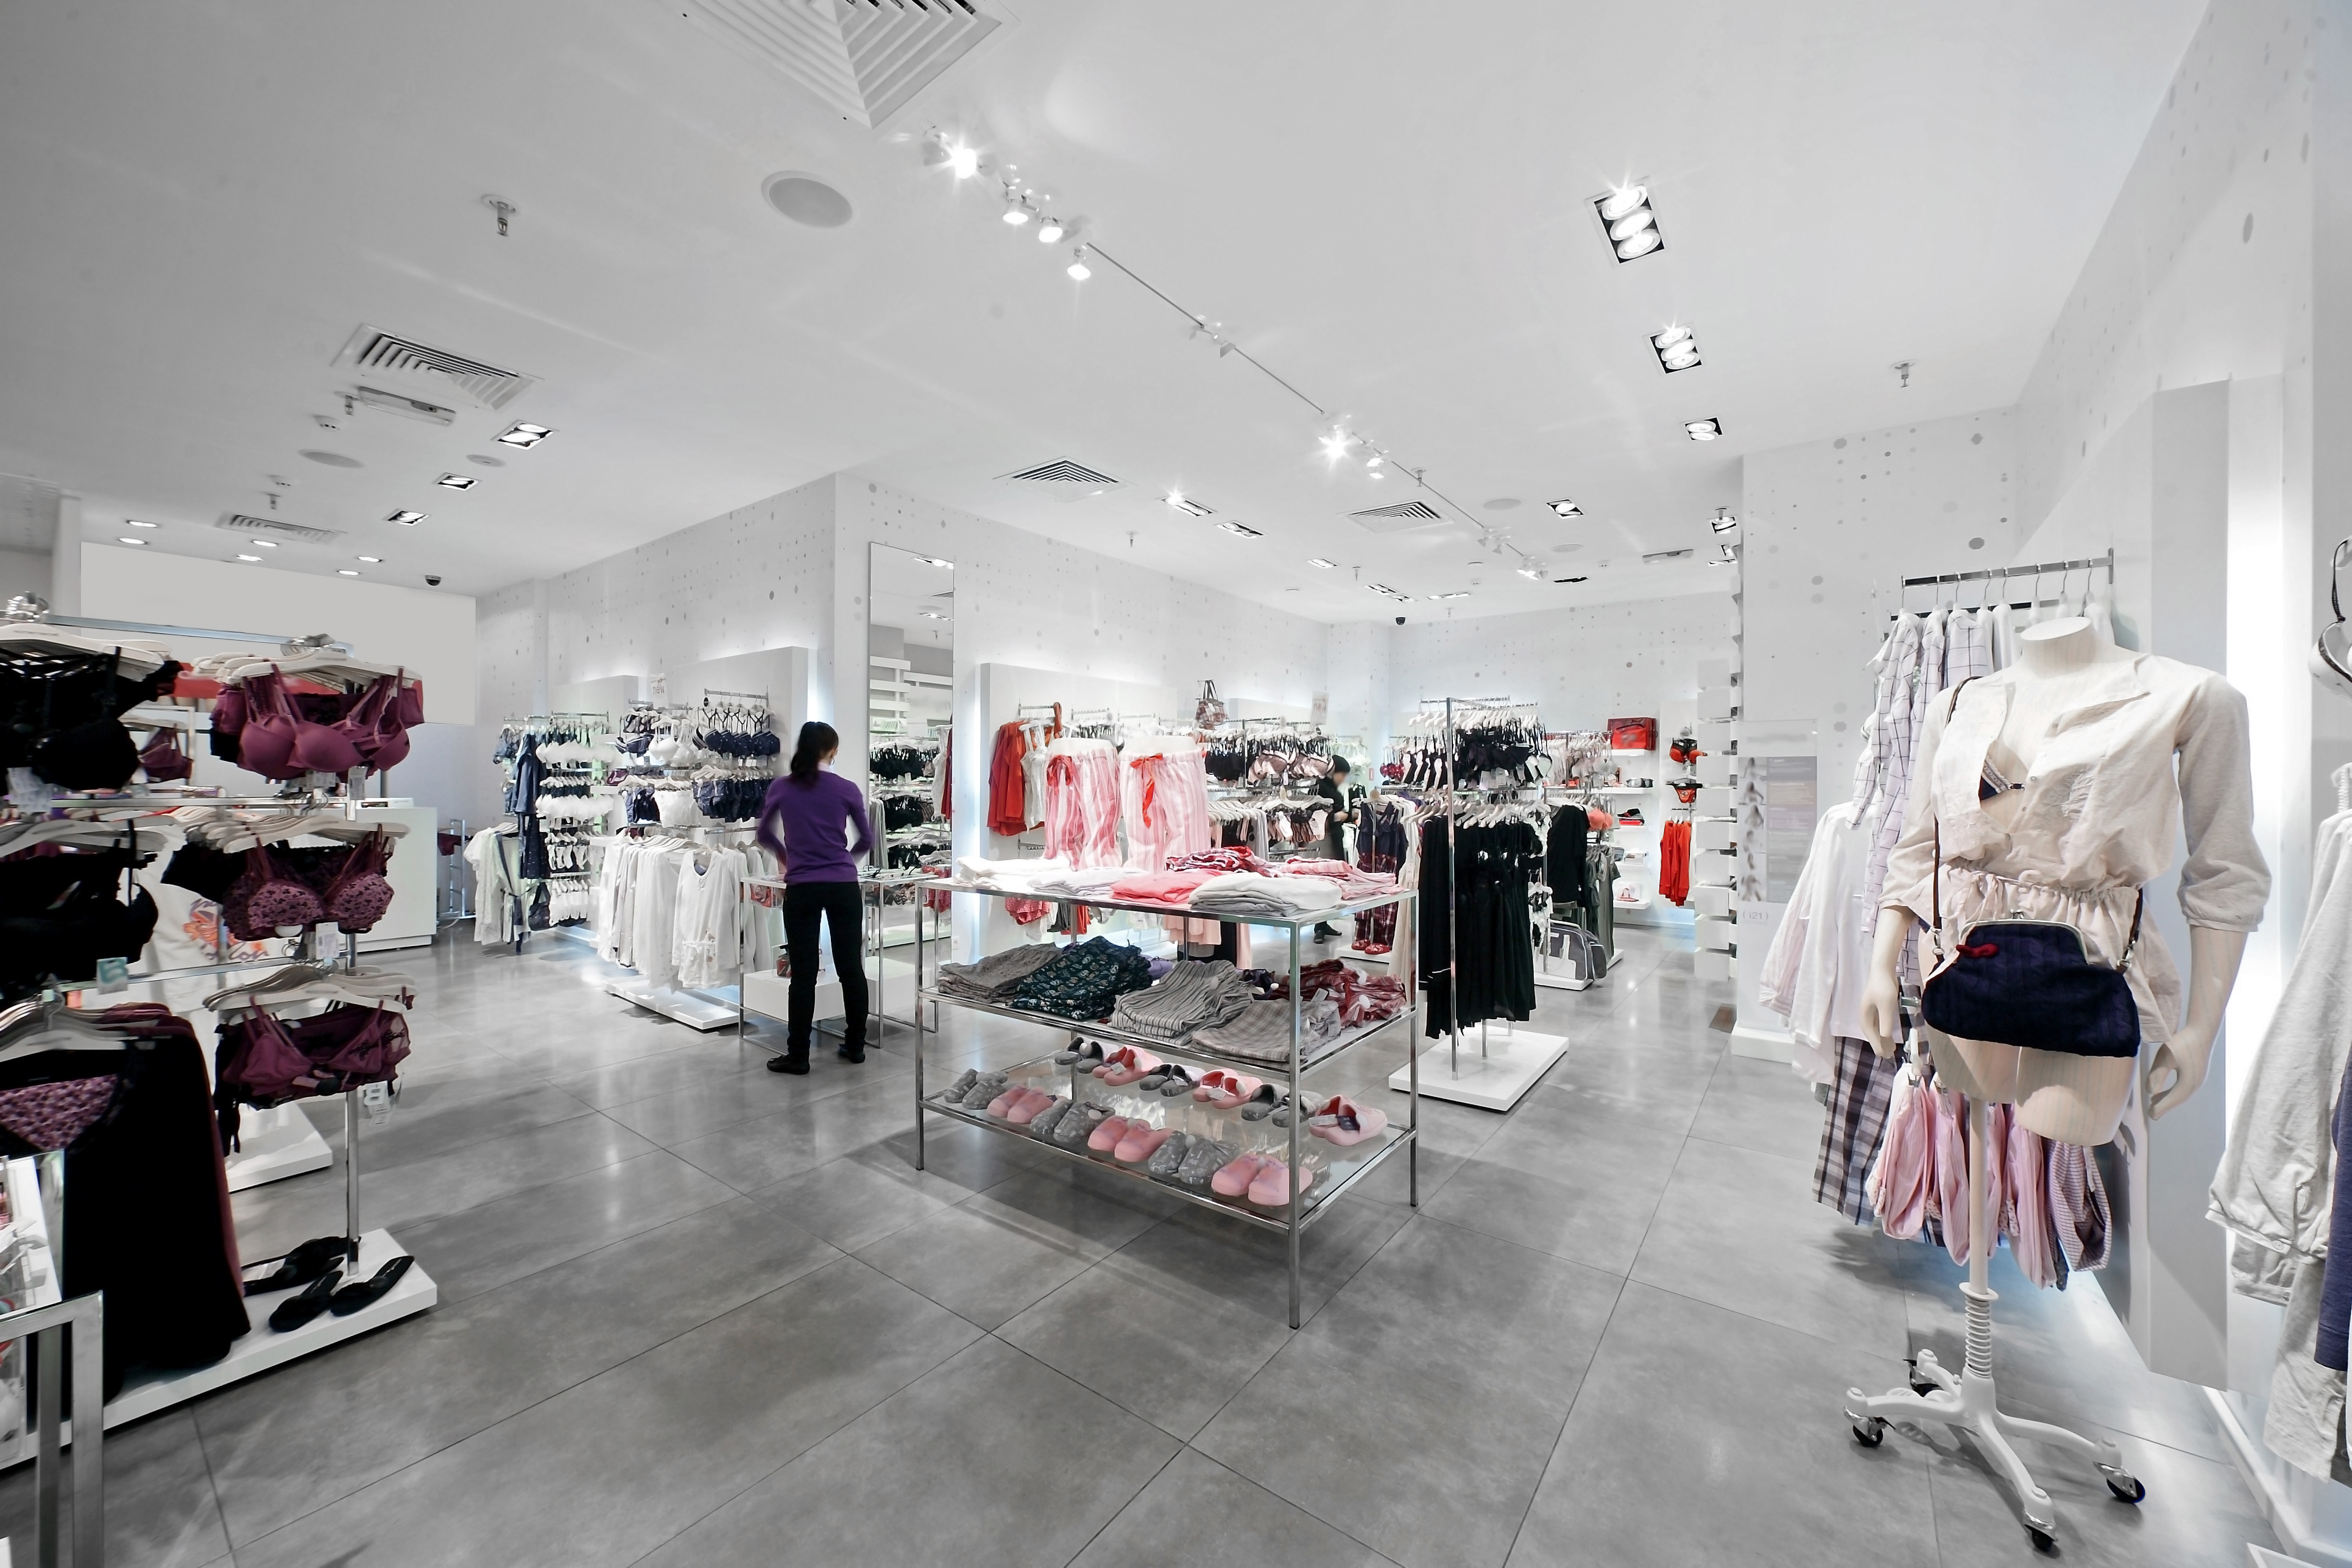 Analysis of in-store shopping behaviour shows that underwear – though almost never the primary shopping aim – is one of the highest-selling items, as shoppers serendipitously enter the department